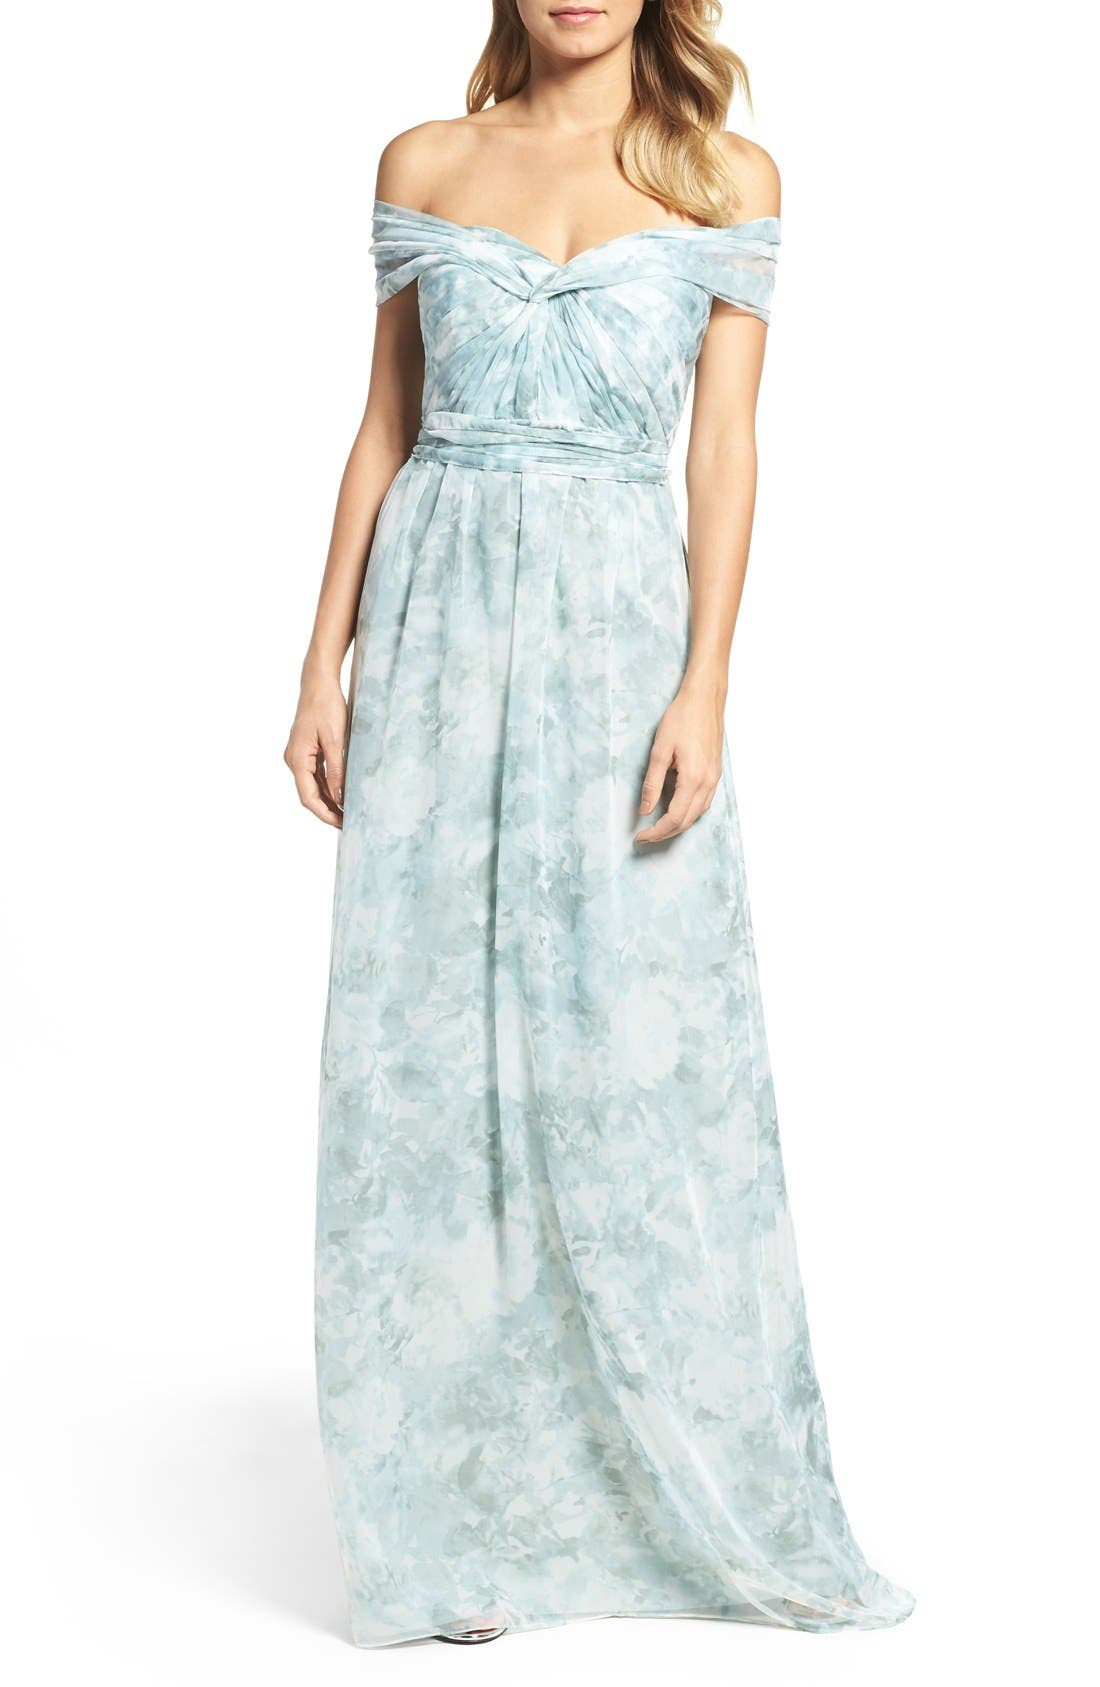 Nyla Floral Print Convertible Strapless Chiffon Gown,                             Main thumbnail 4, color,